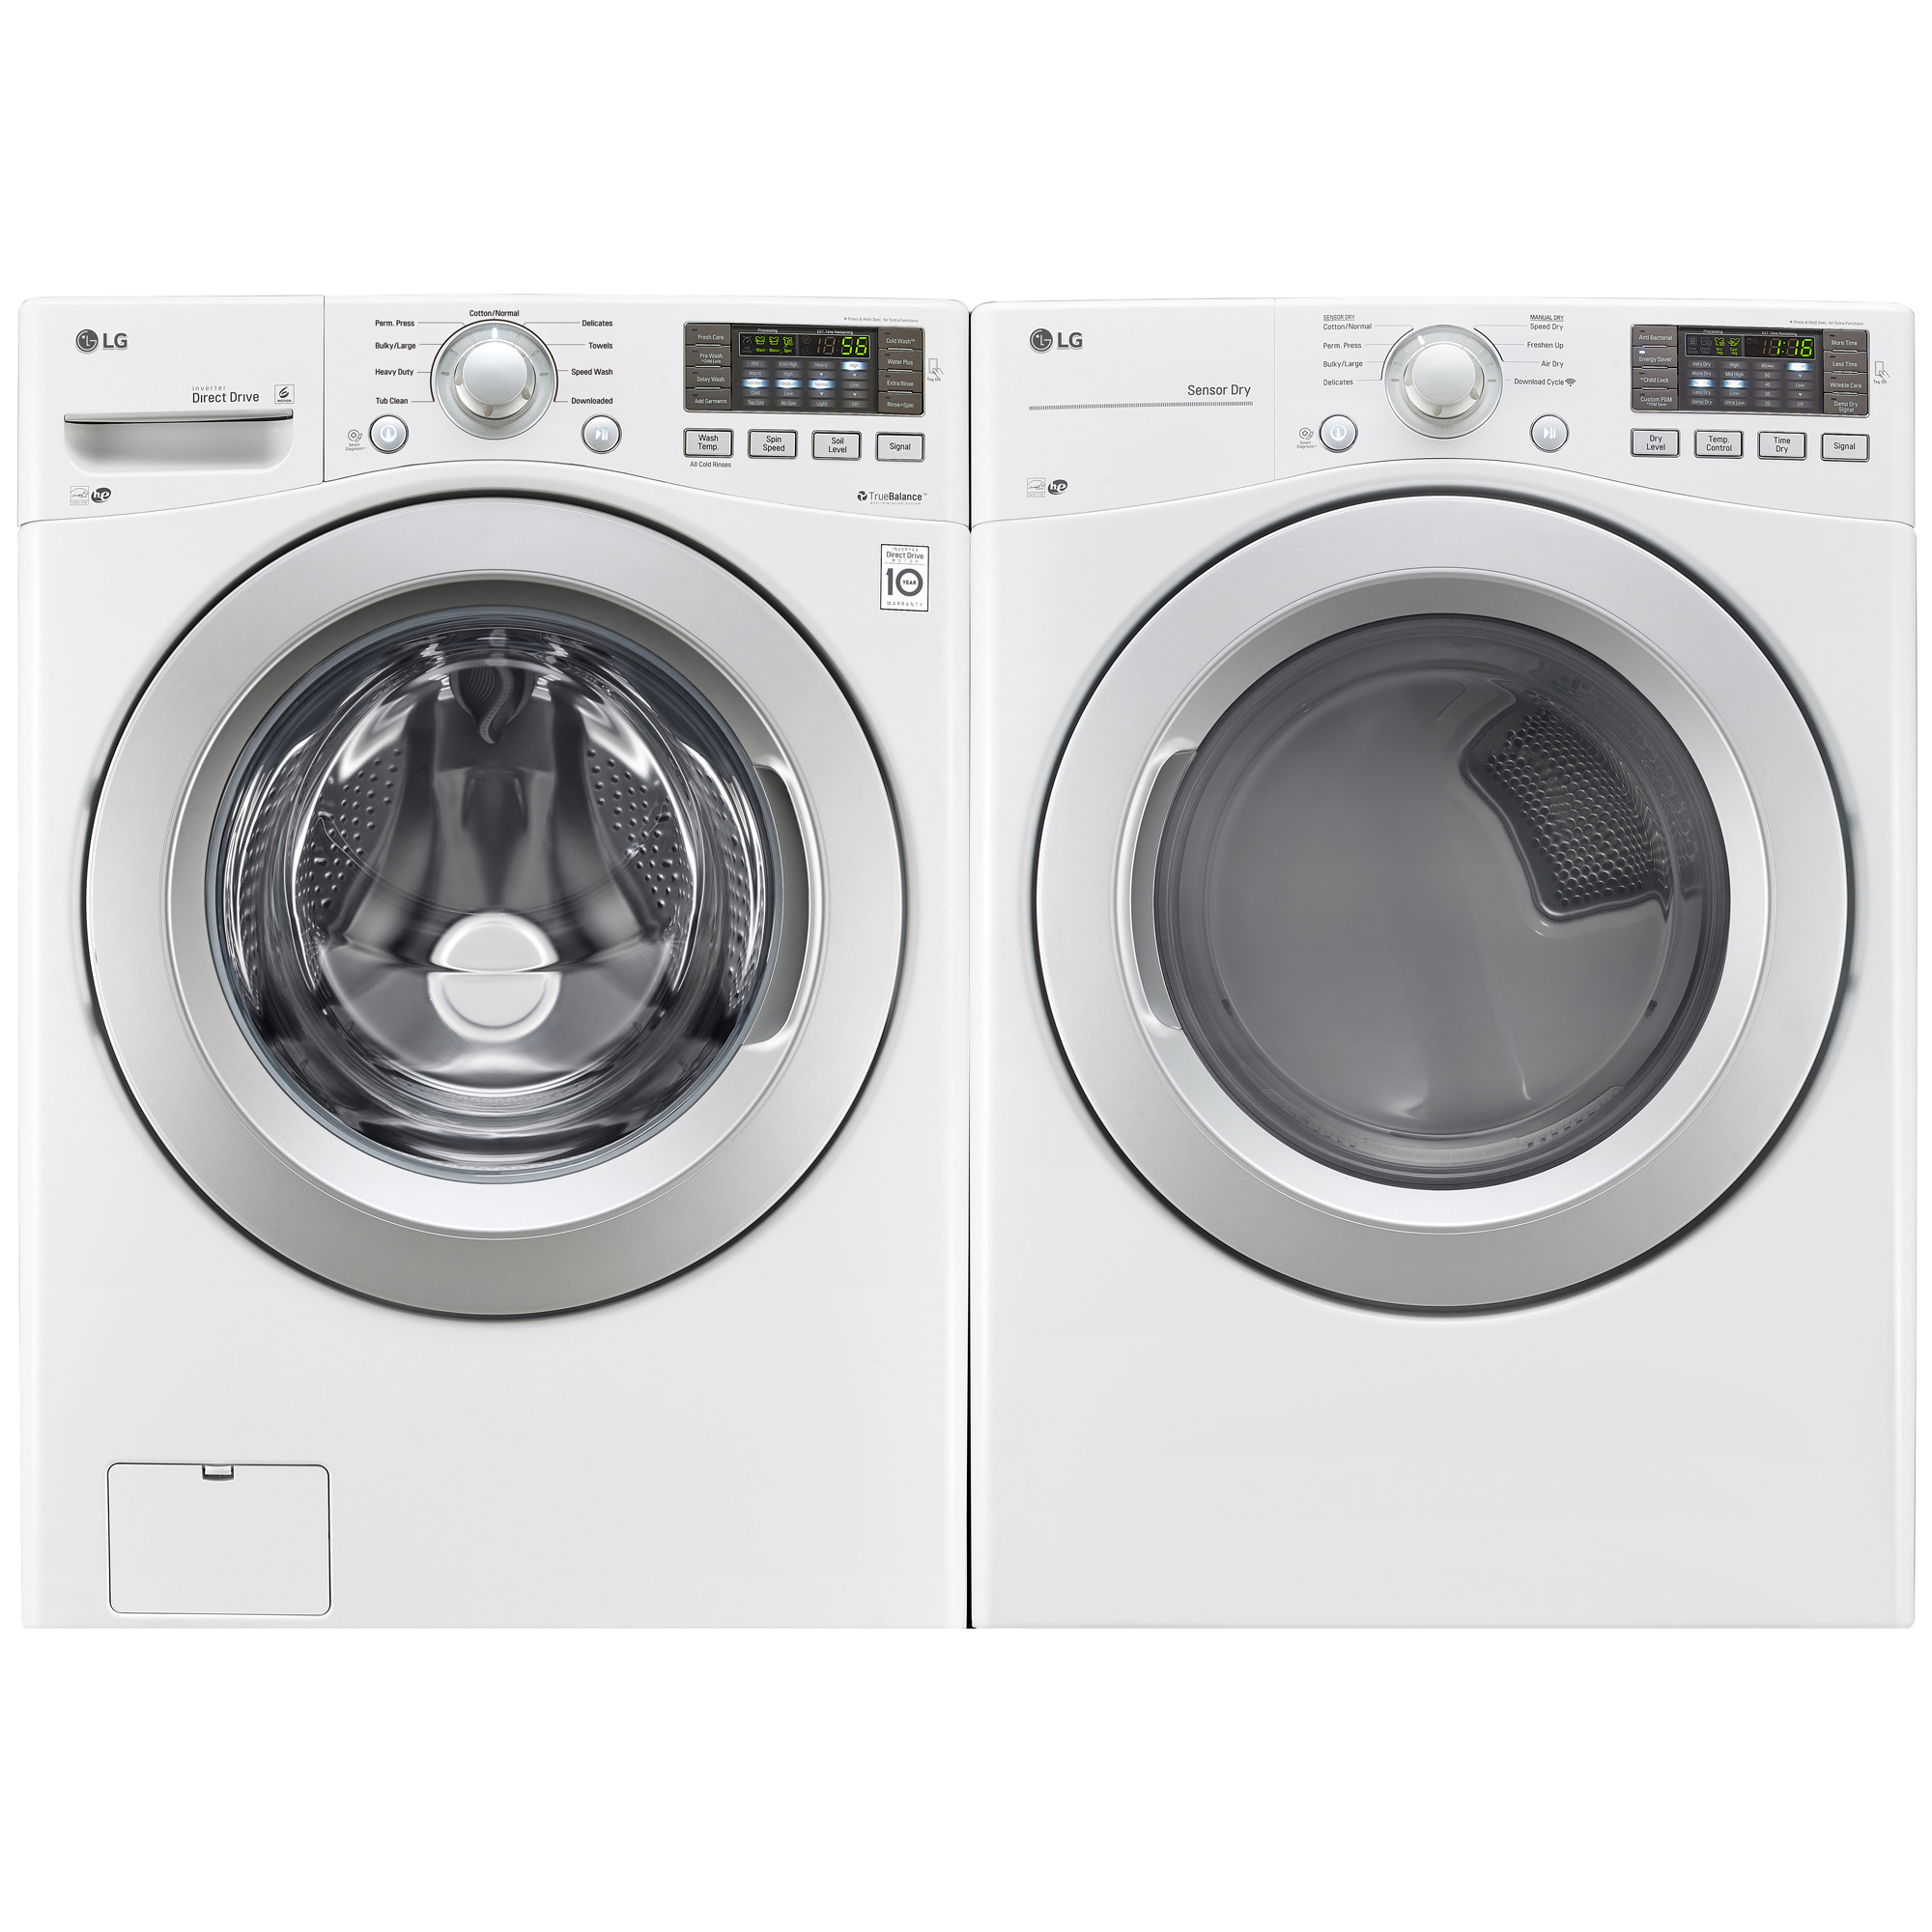 4.5 cu. ft. Capacity Front Load Washer w/Coldwash & 7.4 cu. ft. Dryer w/NFC Tag-On Bundle White